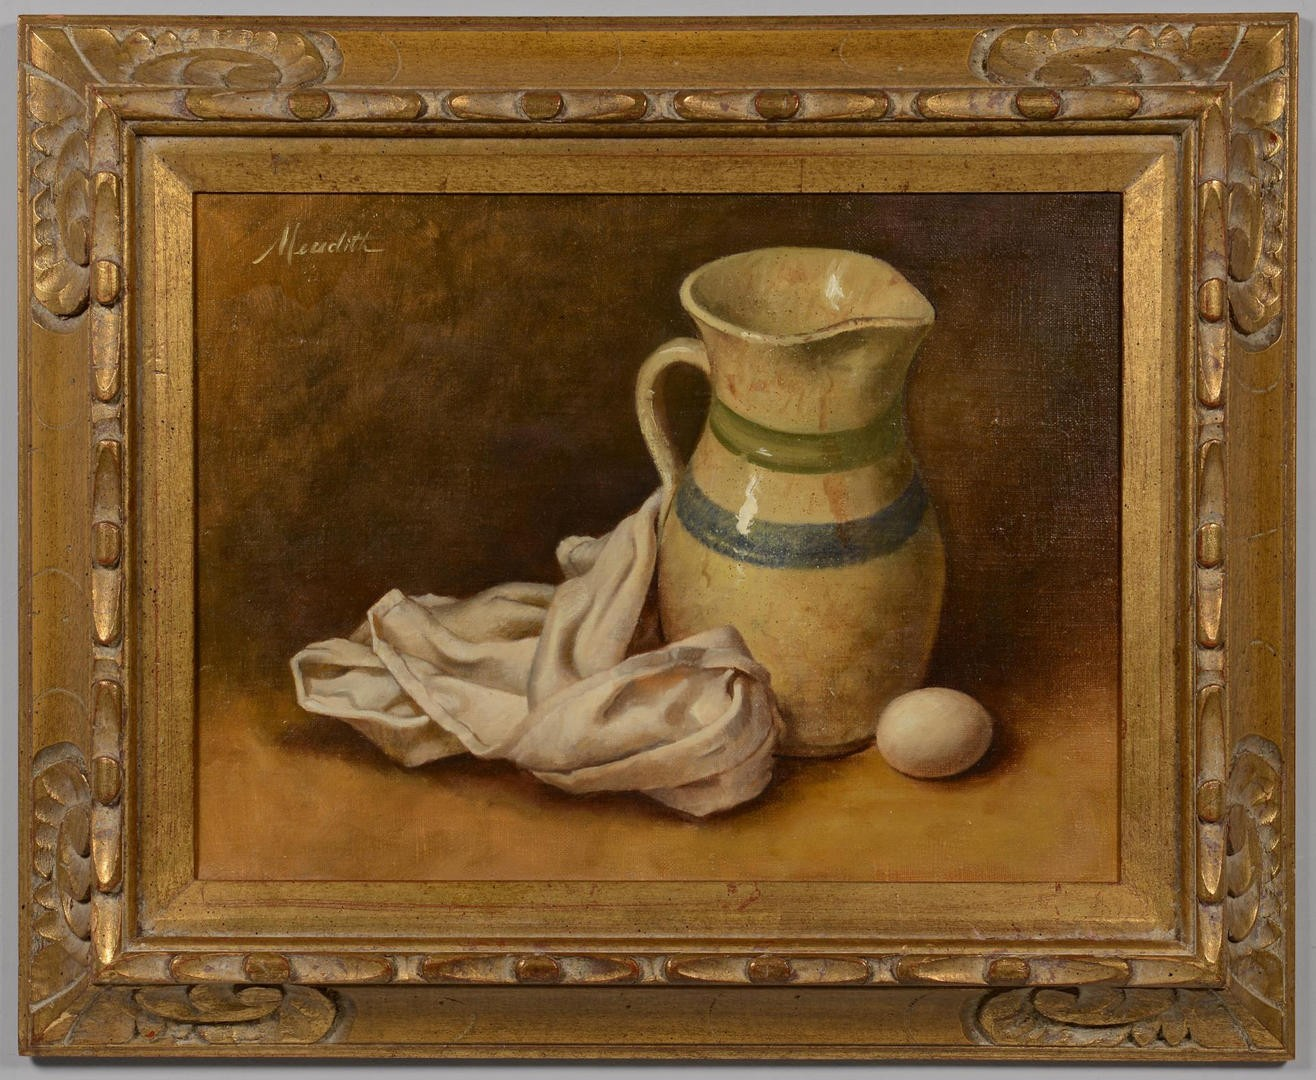 Lot 3594277: Robert Meredith, Still Life with Pitcher and Egg